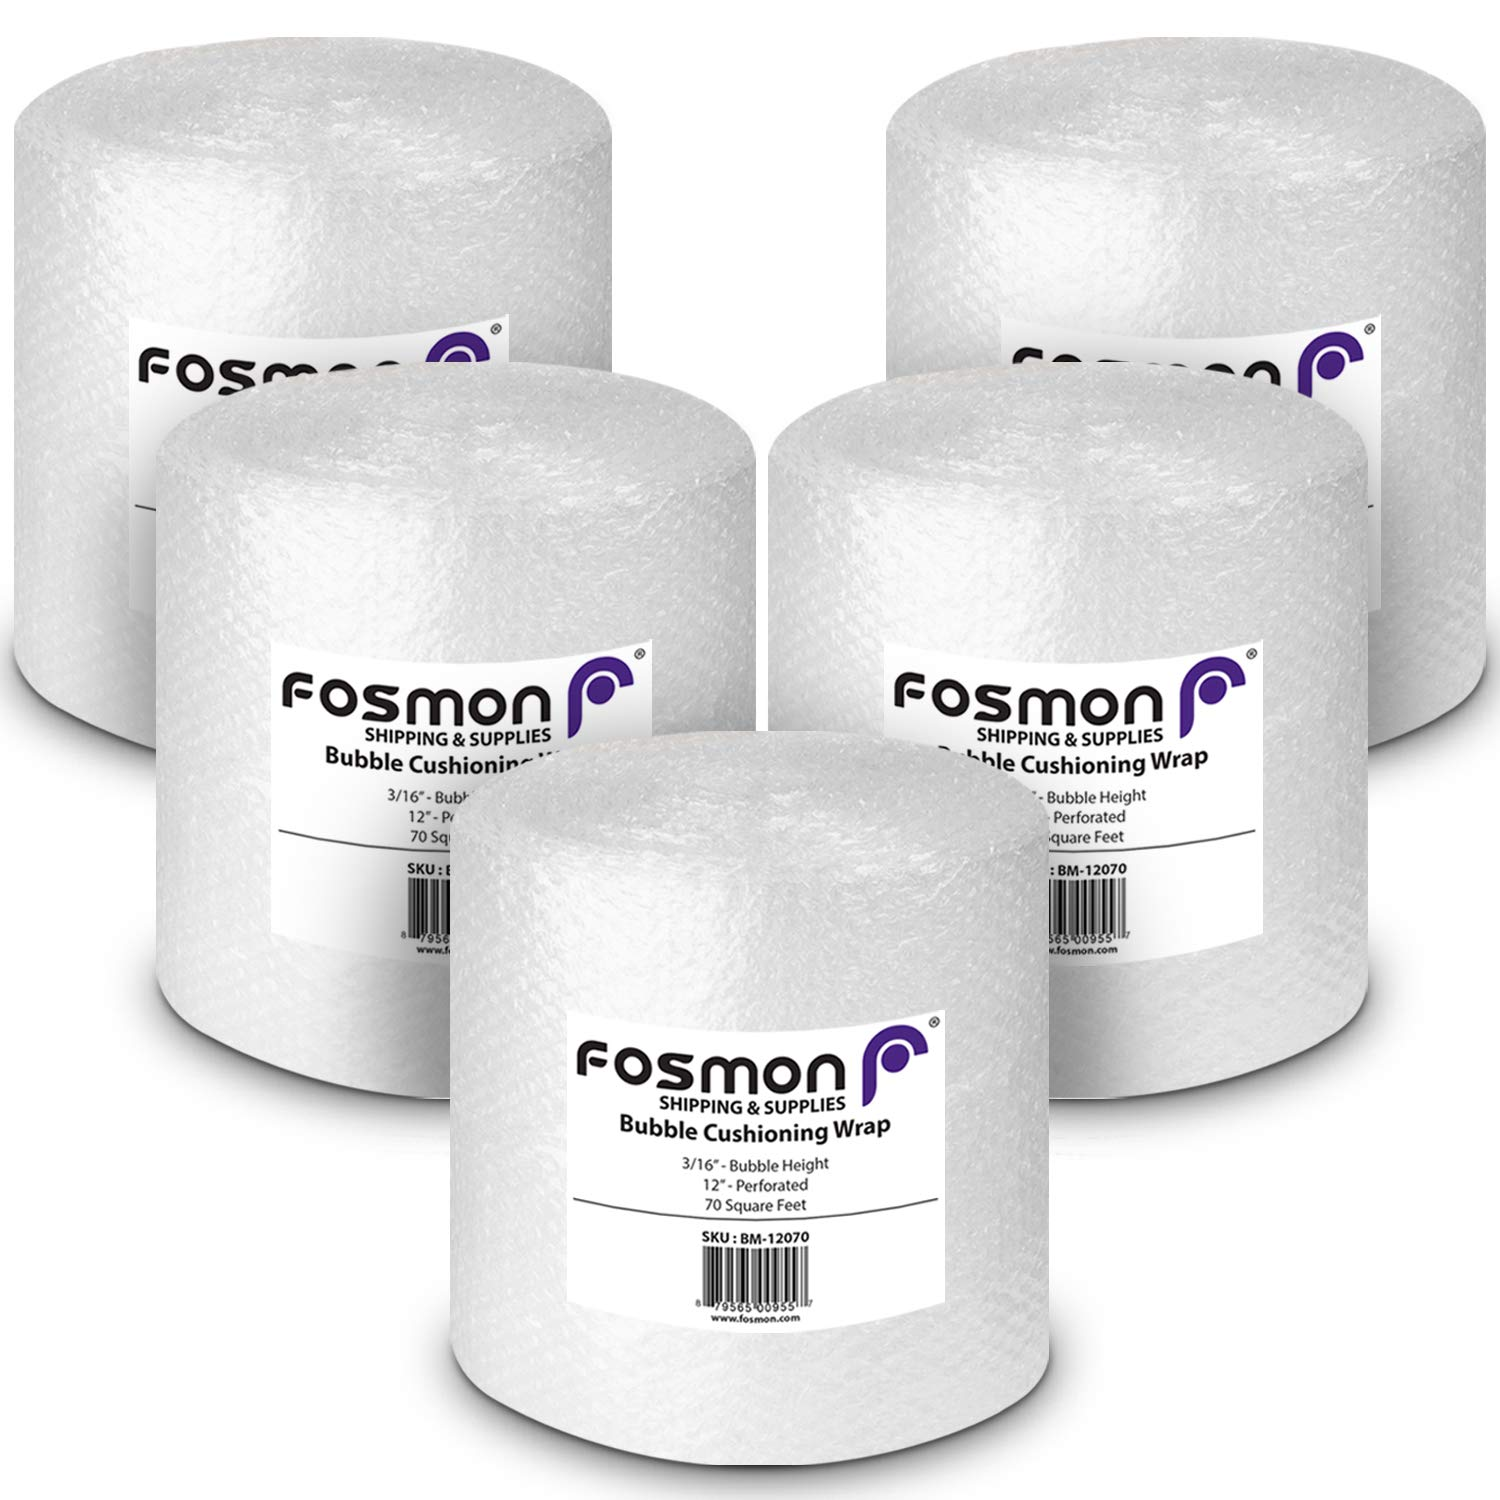 Fosmon Bubble Cushioning Wrap Roll 12'' x 70' (5 Pack, Total of 350 Feet), Perforated Every 12'' for Packaging, Shipping, Mailing and More